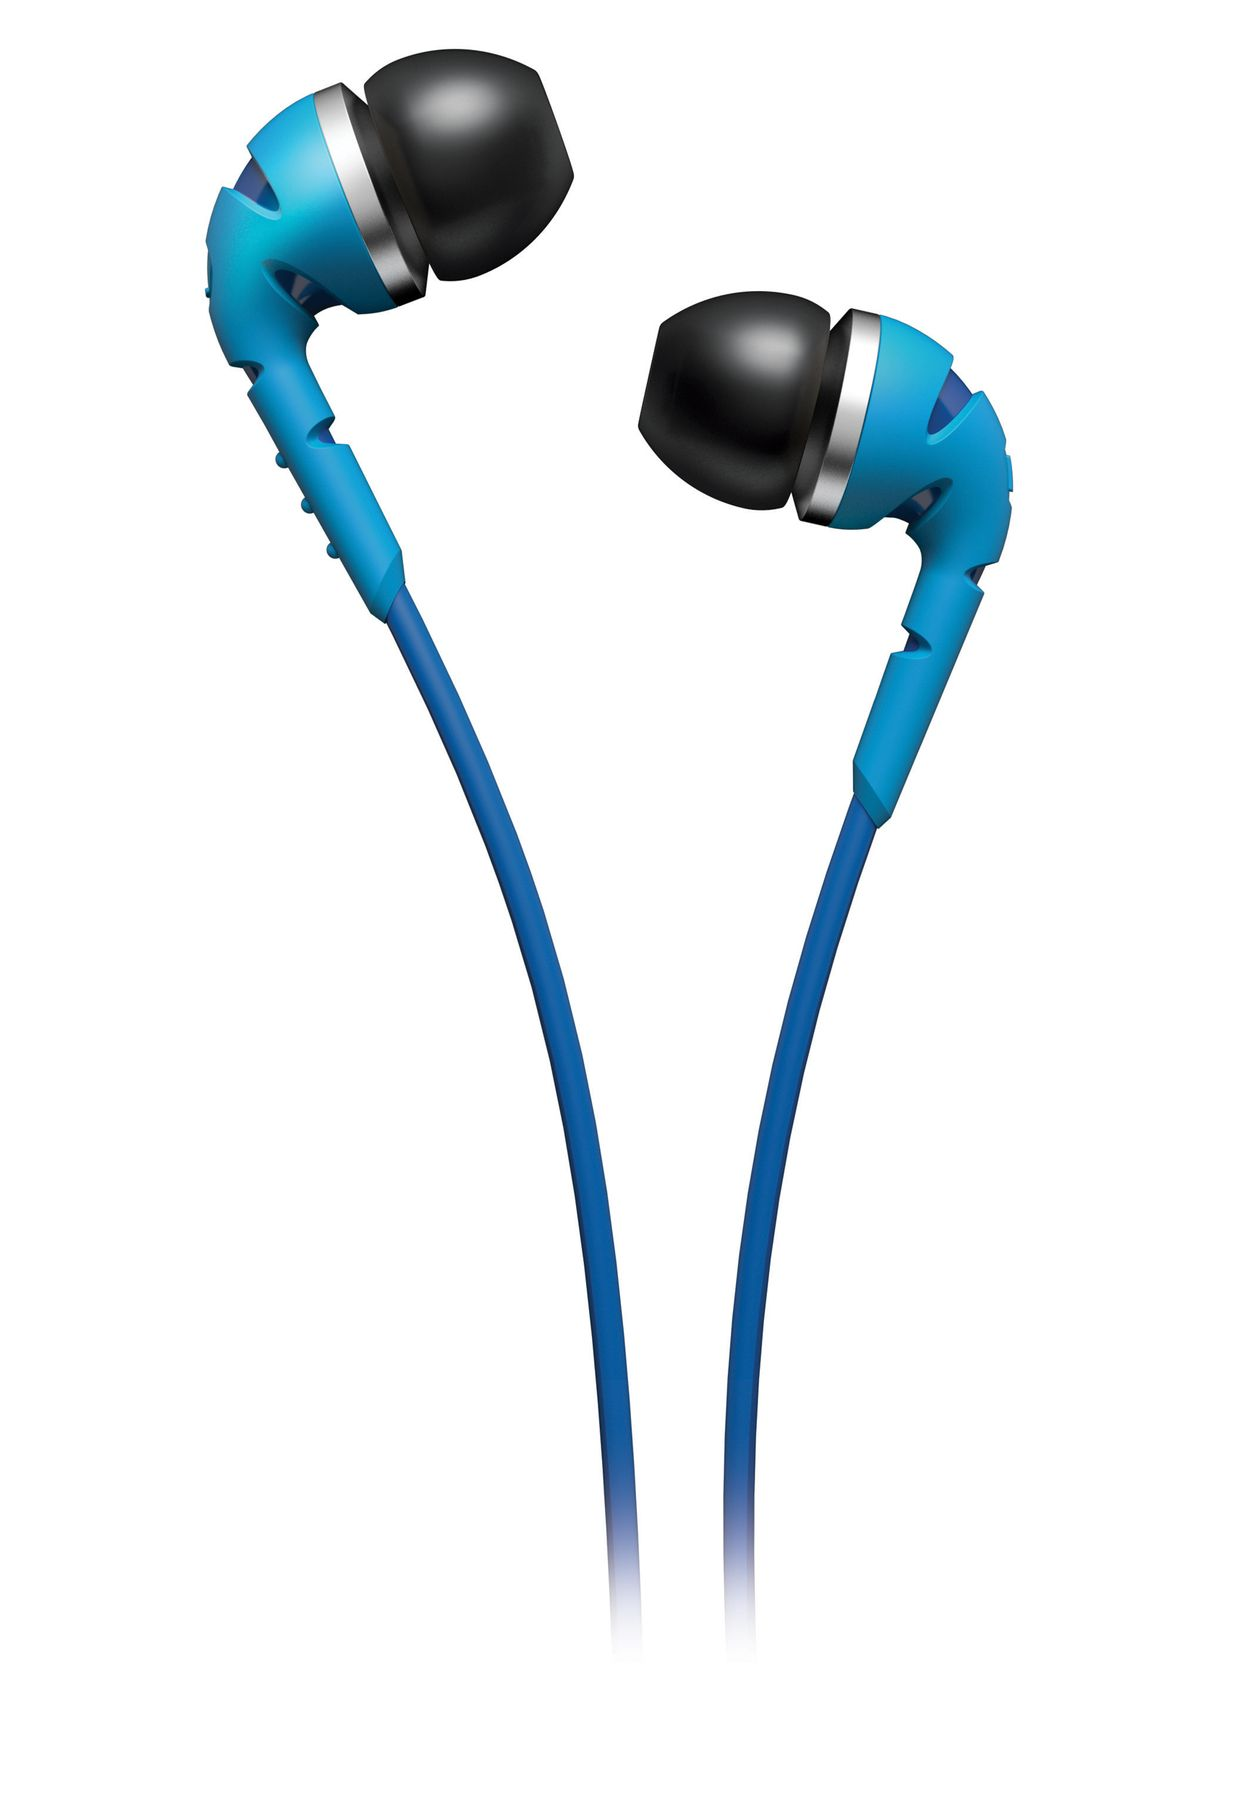 Phillips O'Neill THE TREAD in ear headphones (SHO2200)